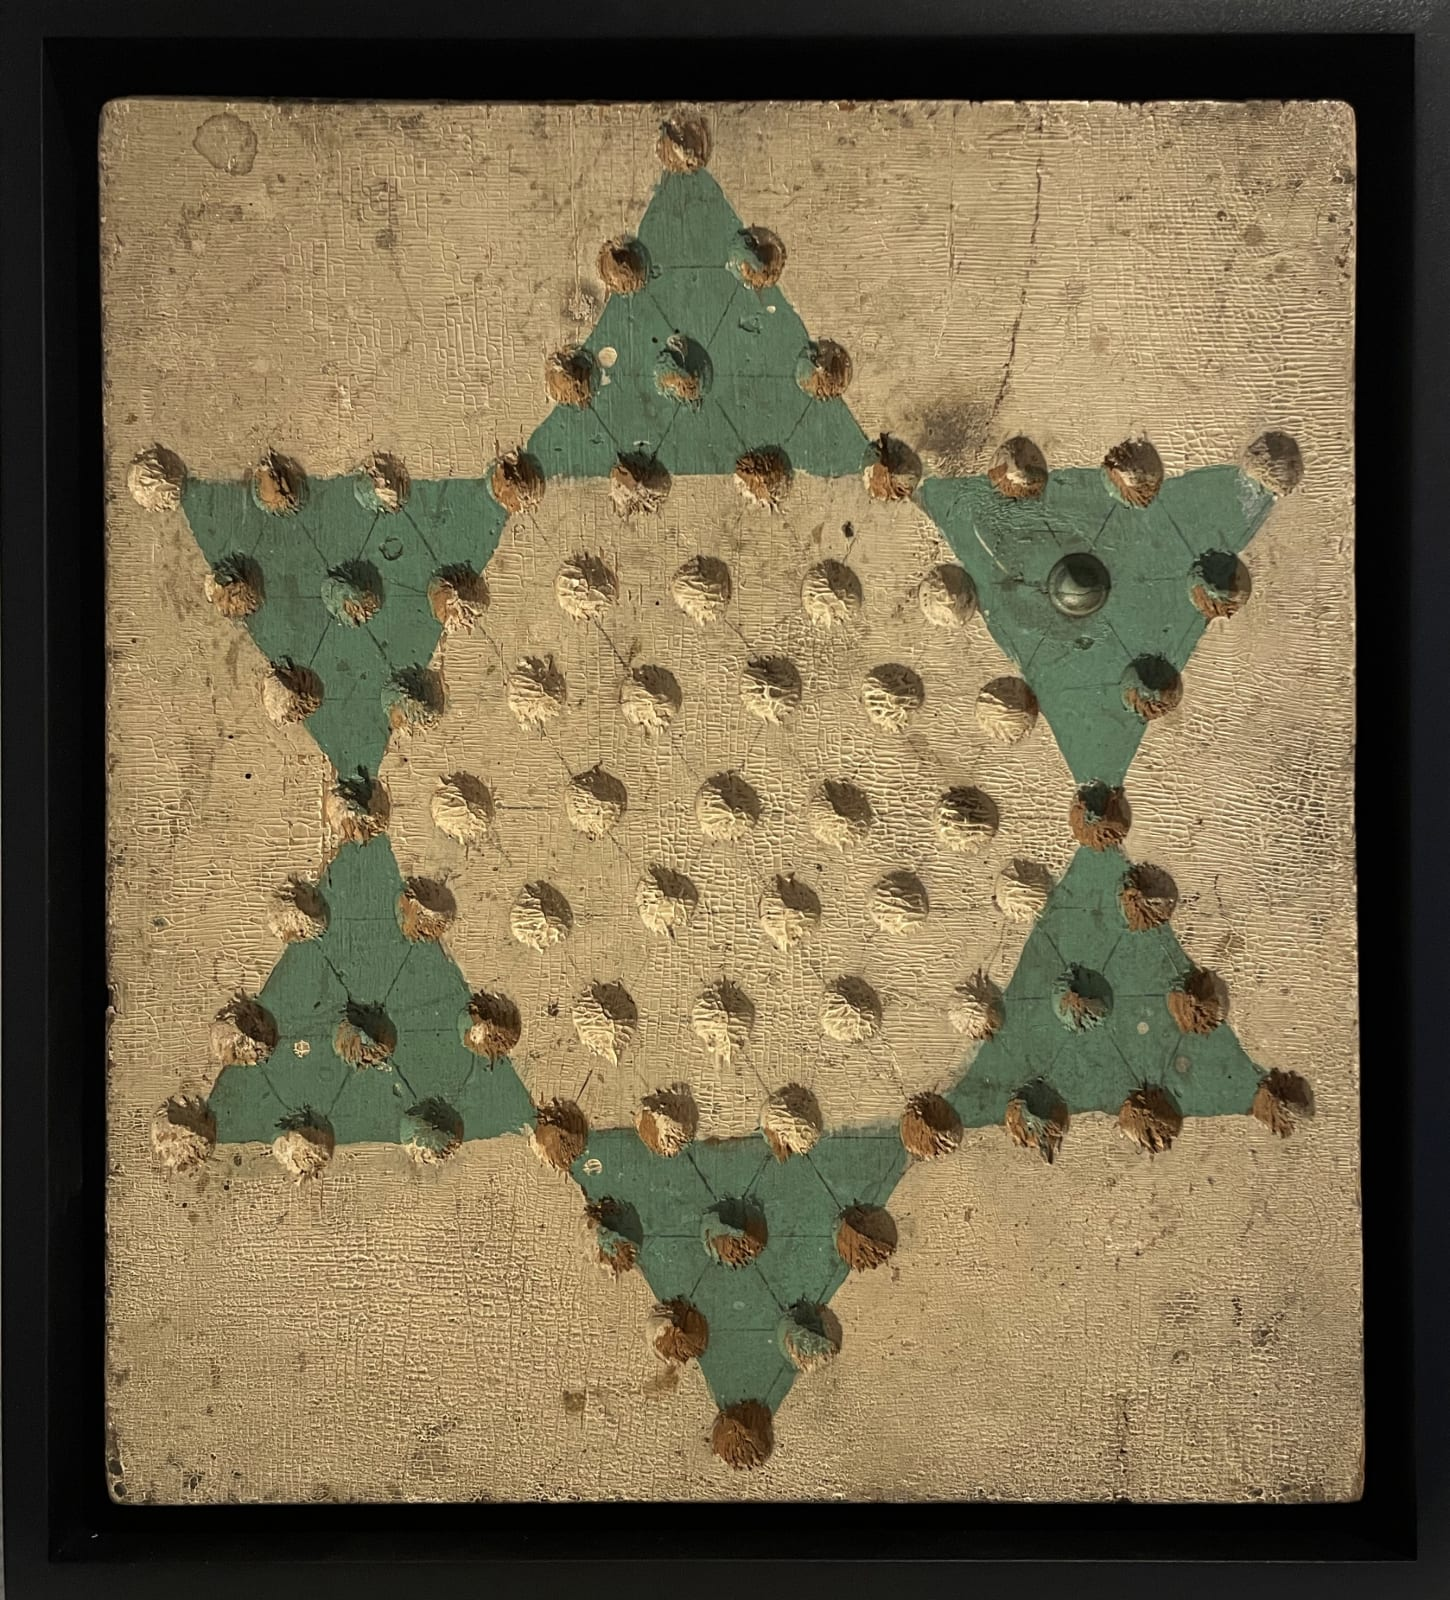 Chinese Checkers Game Board, c. 1930-40 Paint on wood panel 11 1/2 x 10 1/4 in. 29.2 x 26 cm. (AU 299)